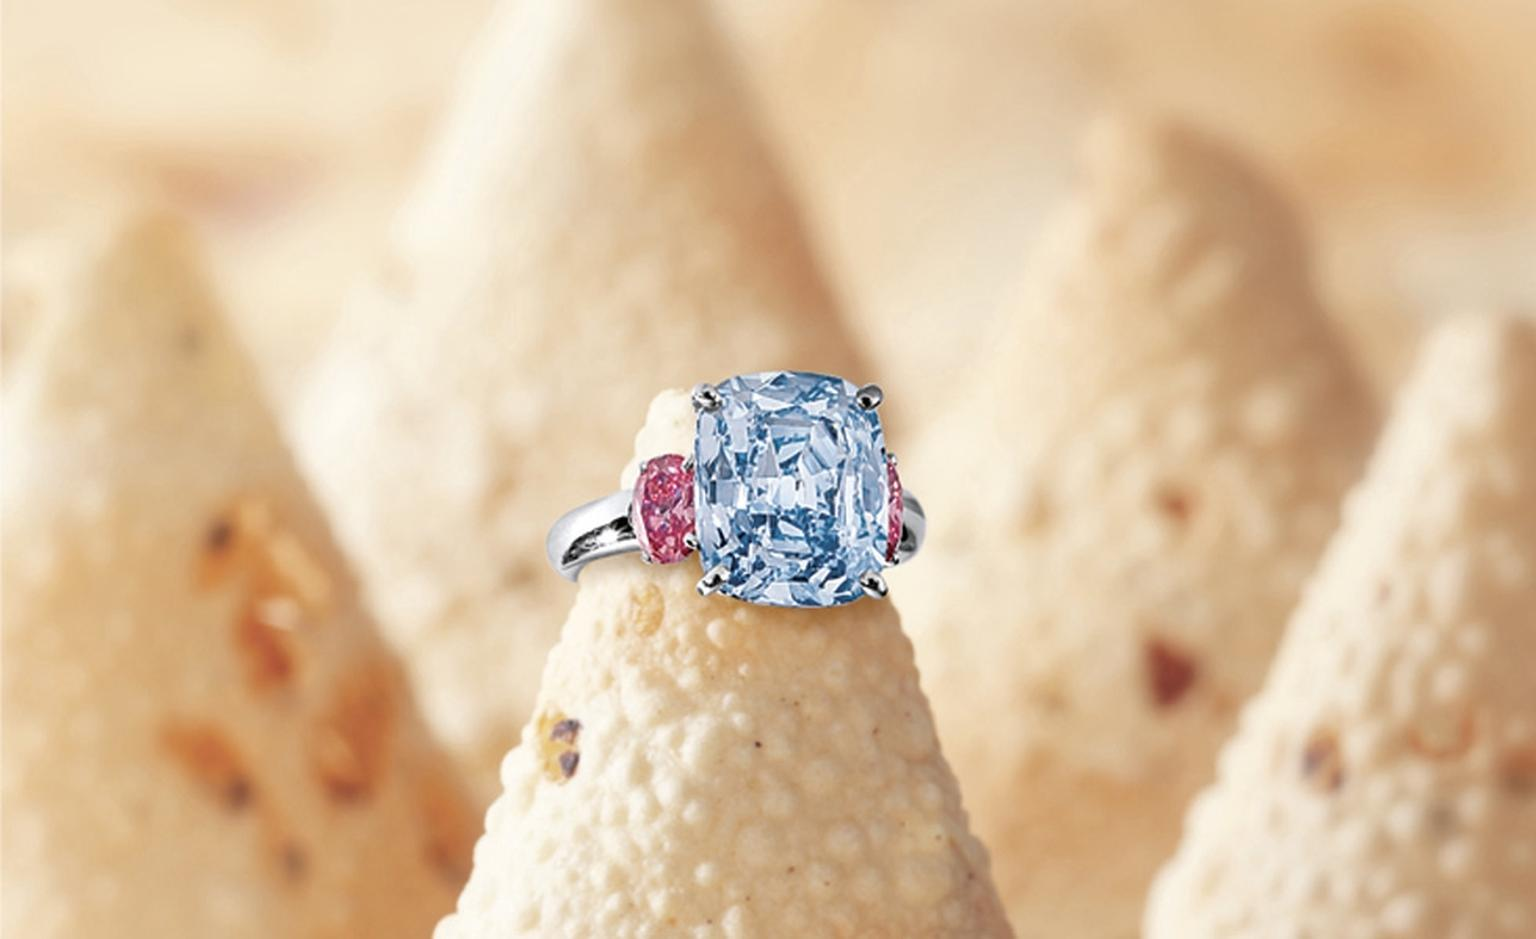 LOT 2851. Rare and important fancy vivid blue diamond and pink diamond ring. EST 70,000,000 - 85,000,000 HKD OLD 79,060,000 HKD